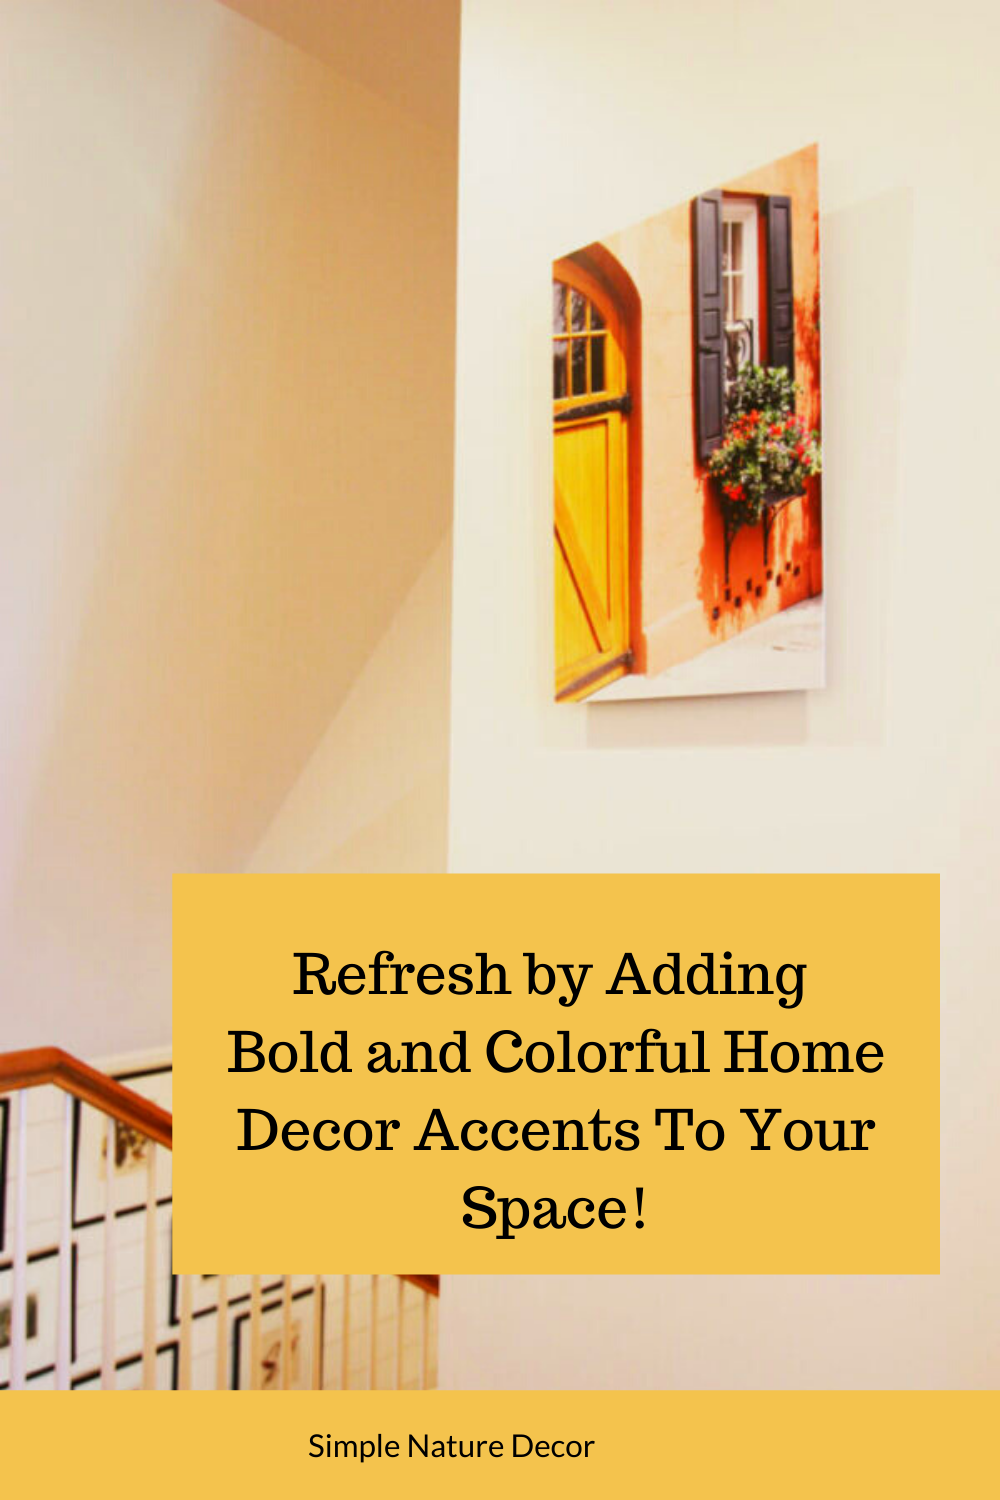 7 Ways to Refresh Your Home with Bright And Bold Home Decor Accents by adding colorful photos